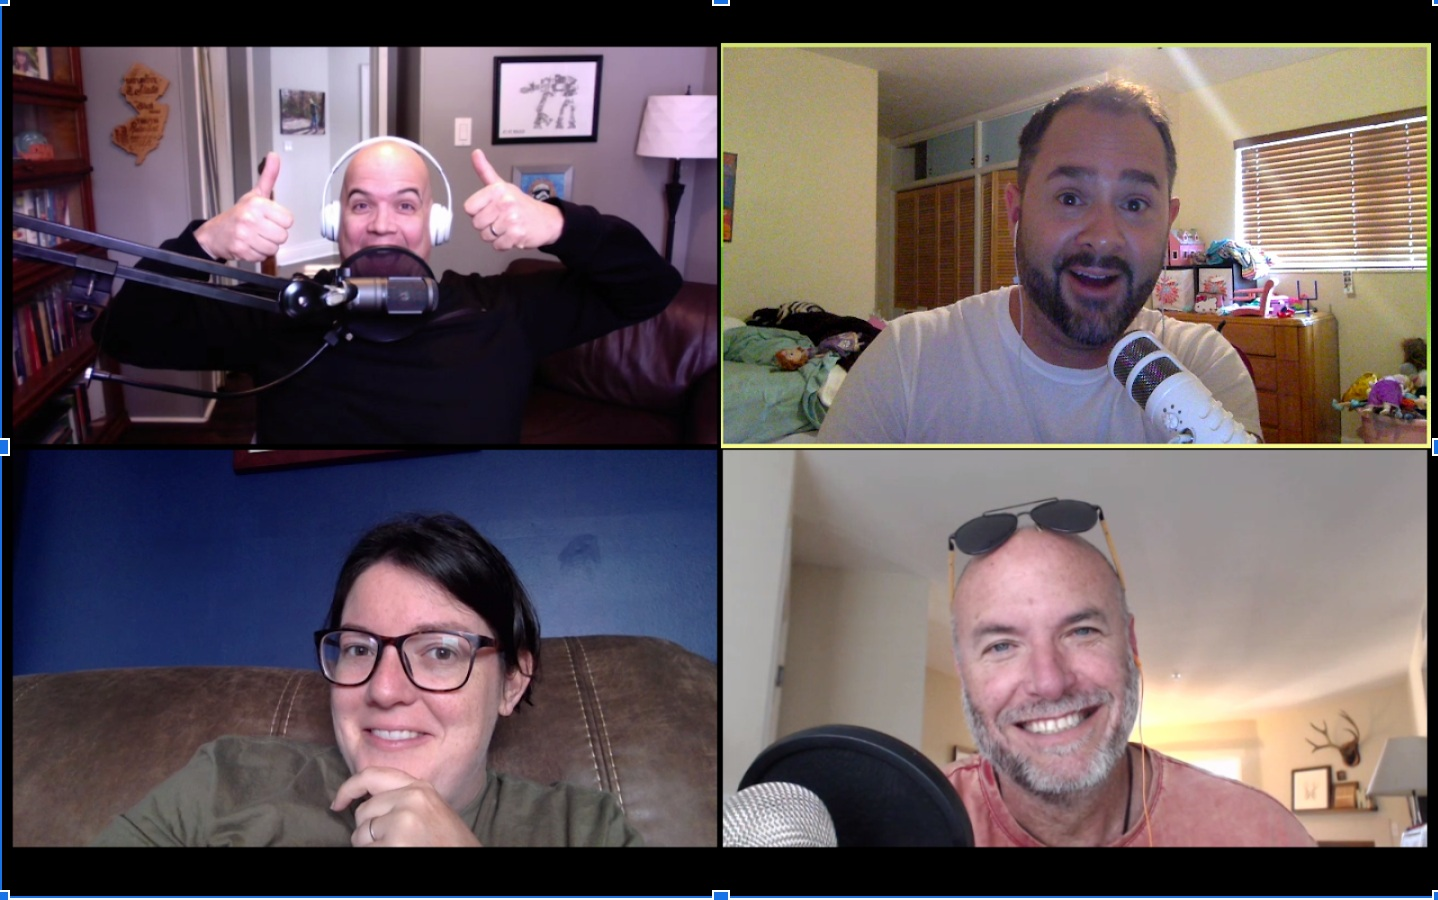 This is the four of us recording the podcast from Ontario Canada, Sunny Florida, and me in Southern California. All About Multisite has spiked on iTunes as high as the #2 downloaded podcast in the Religion/Spirituality category.